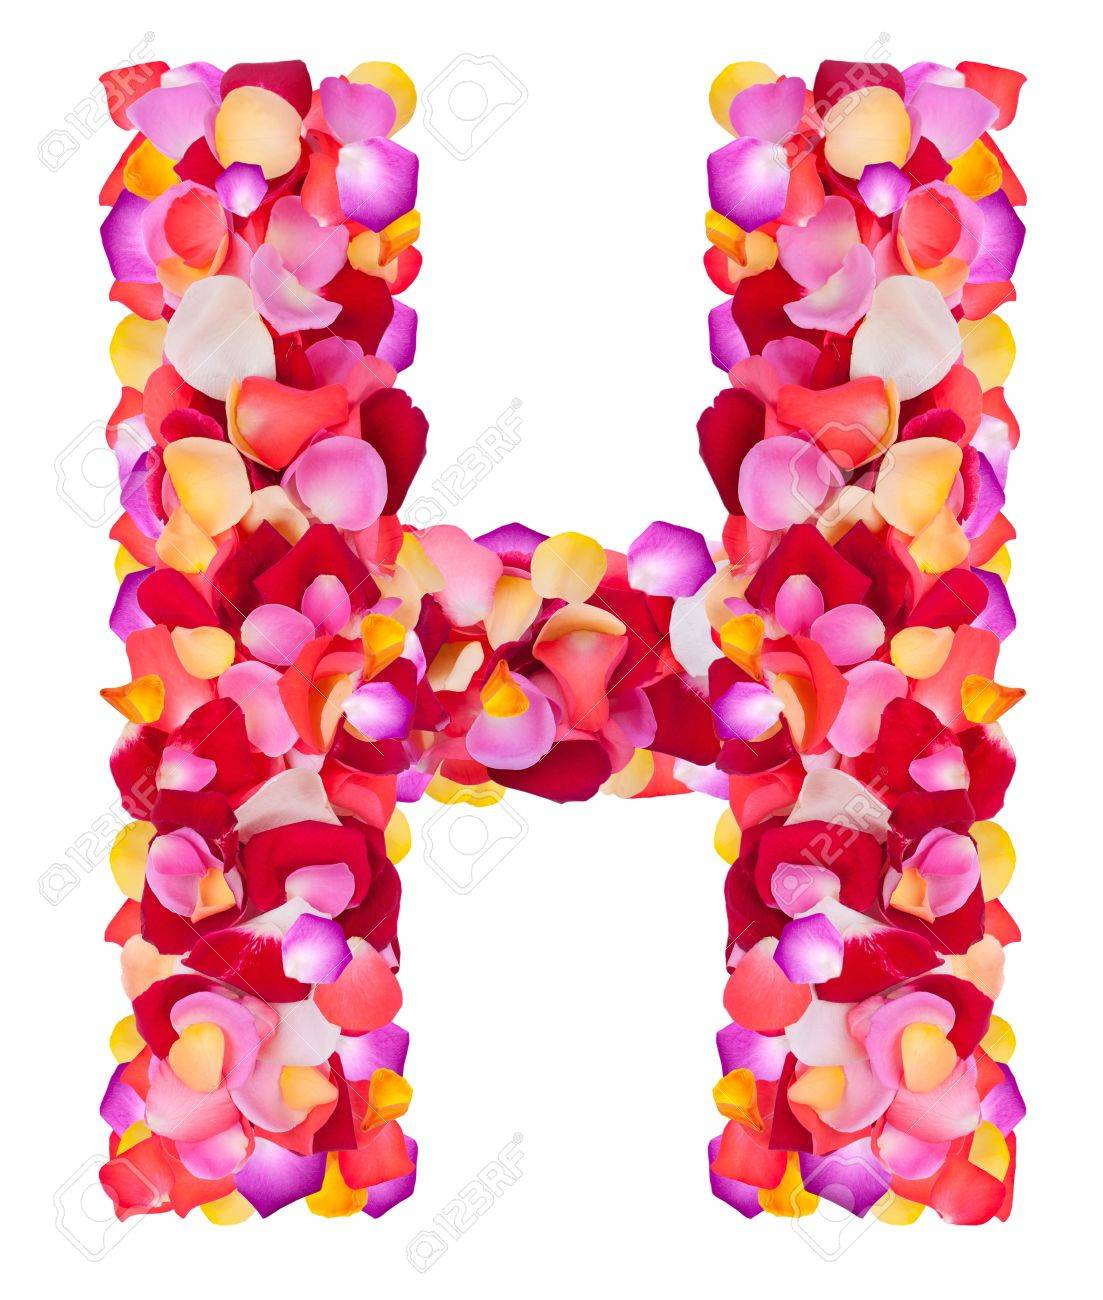 H Letter In Rose Letter H made from colorful